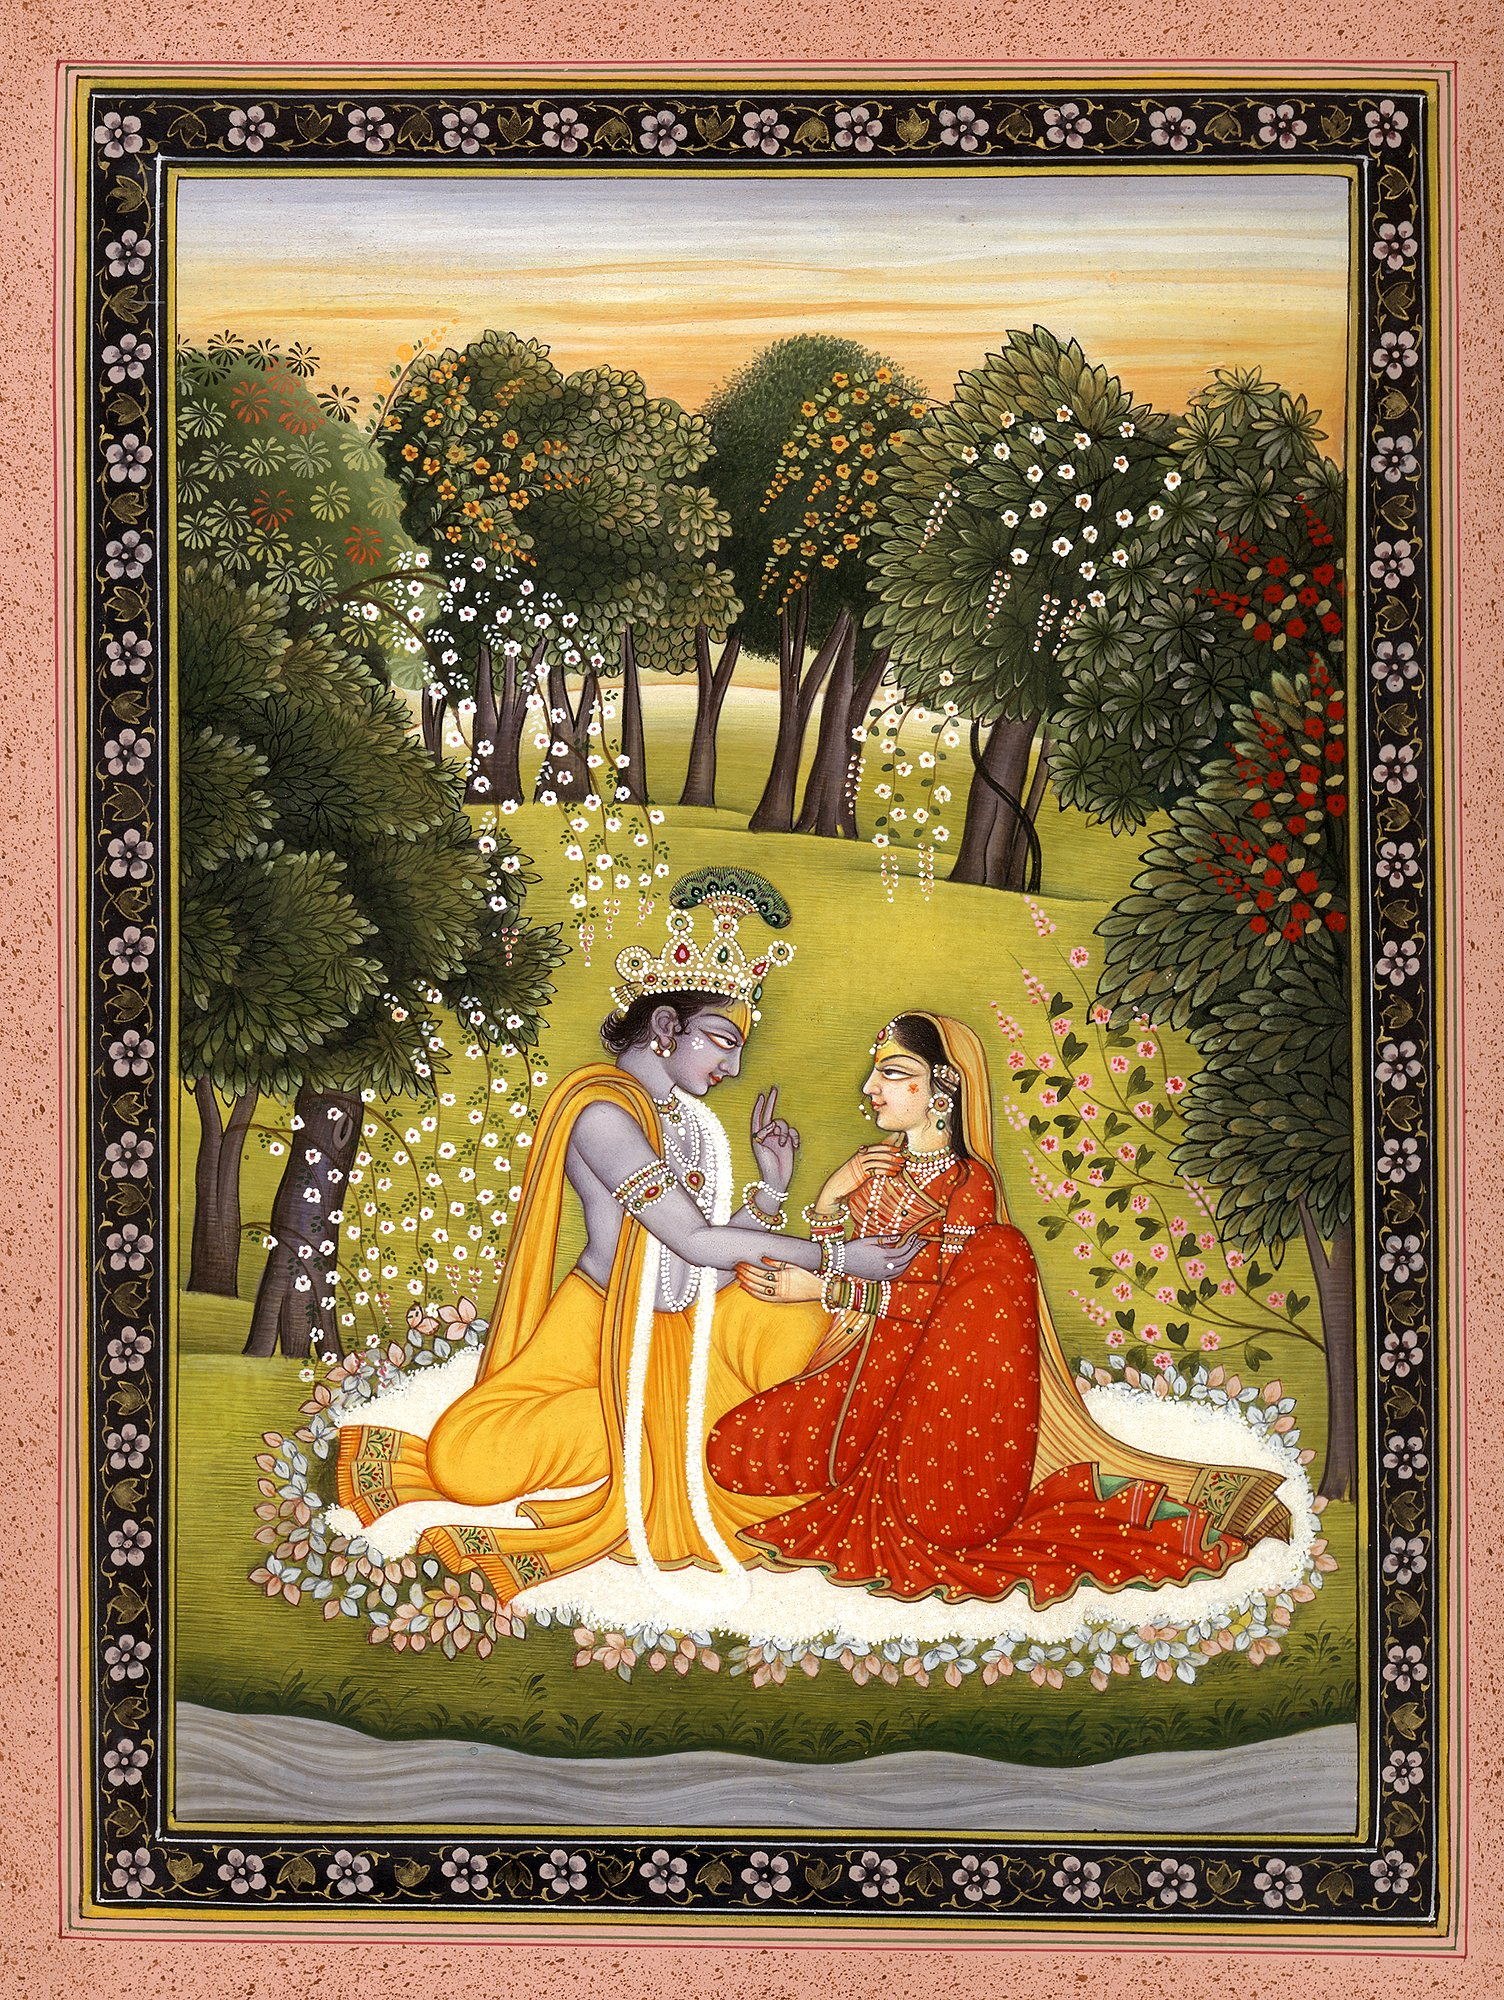 Exotic kama sutra from distant india and asia - 1 part 4